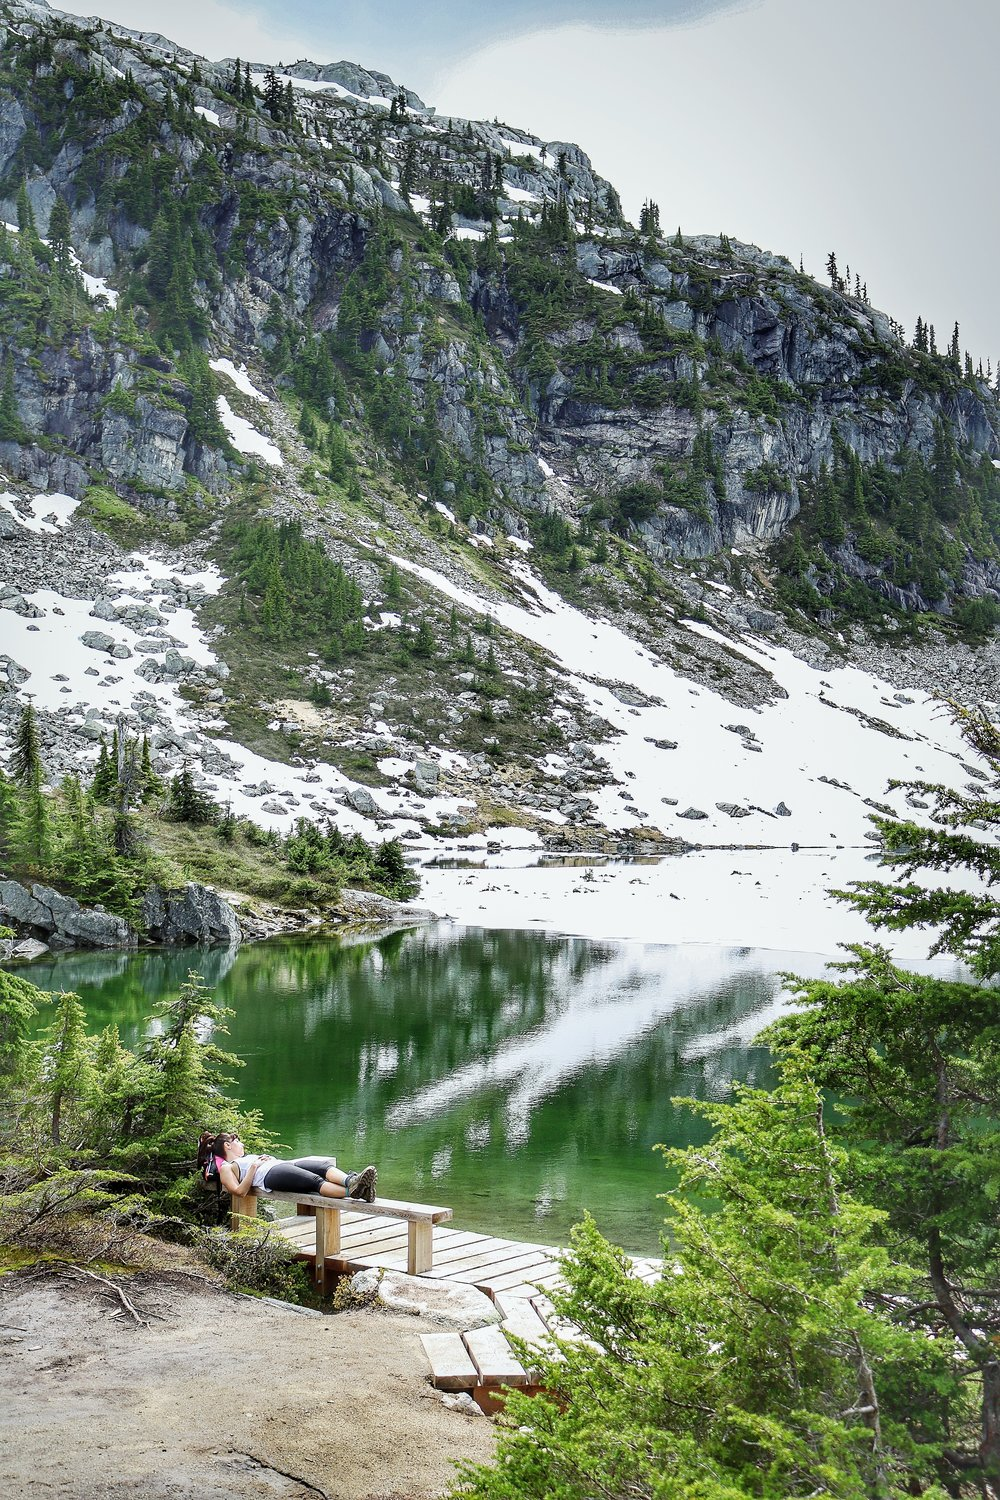 Rest and relaxation at Rainbow Lake